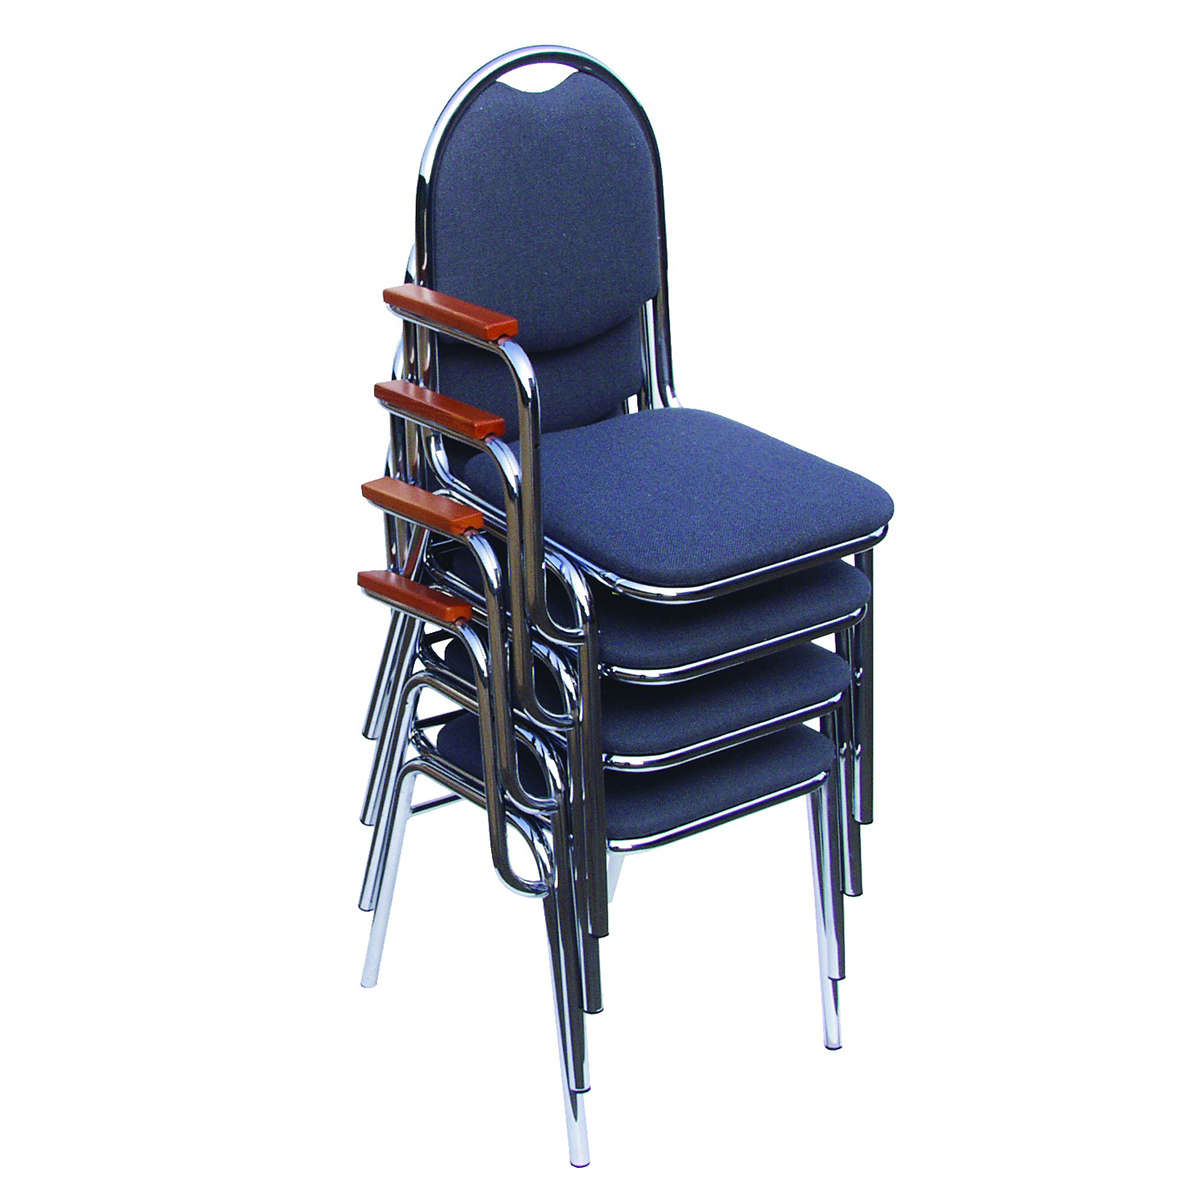 Lea Is Popular Chair With One Arm For Dining Rooms